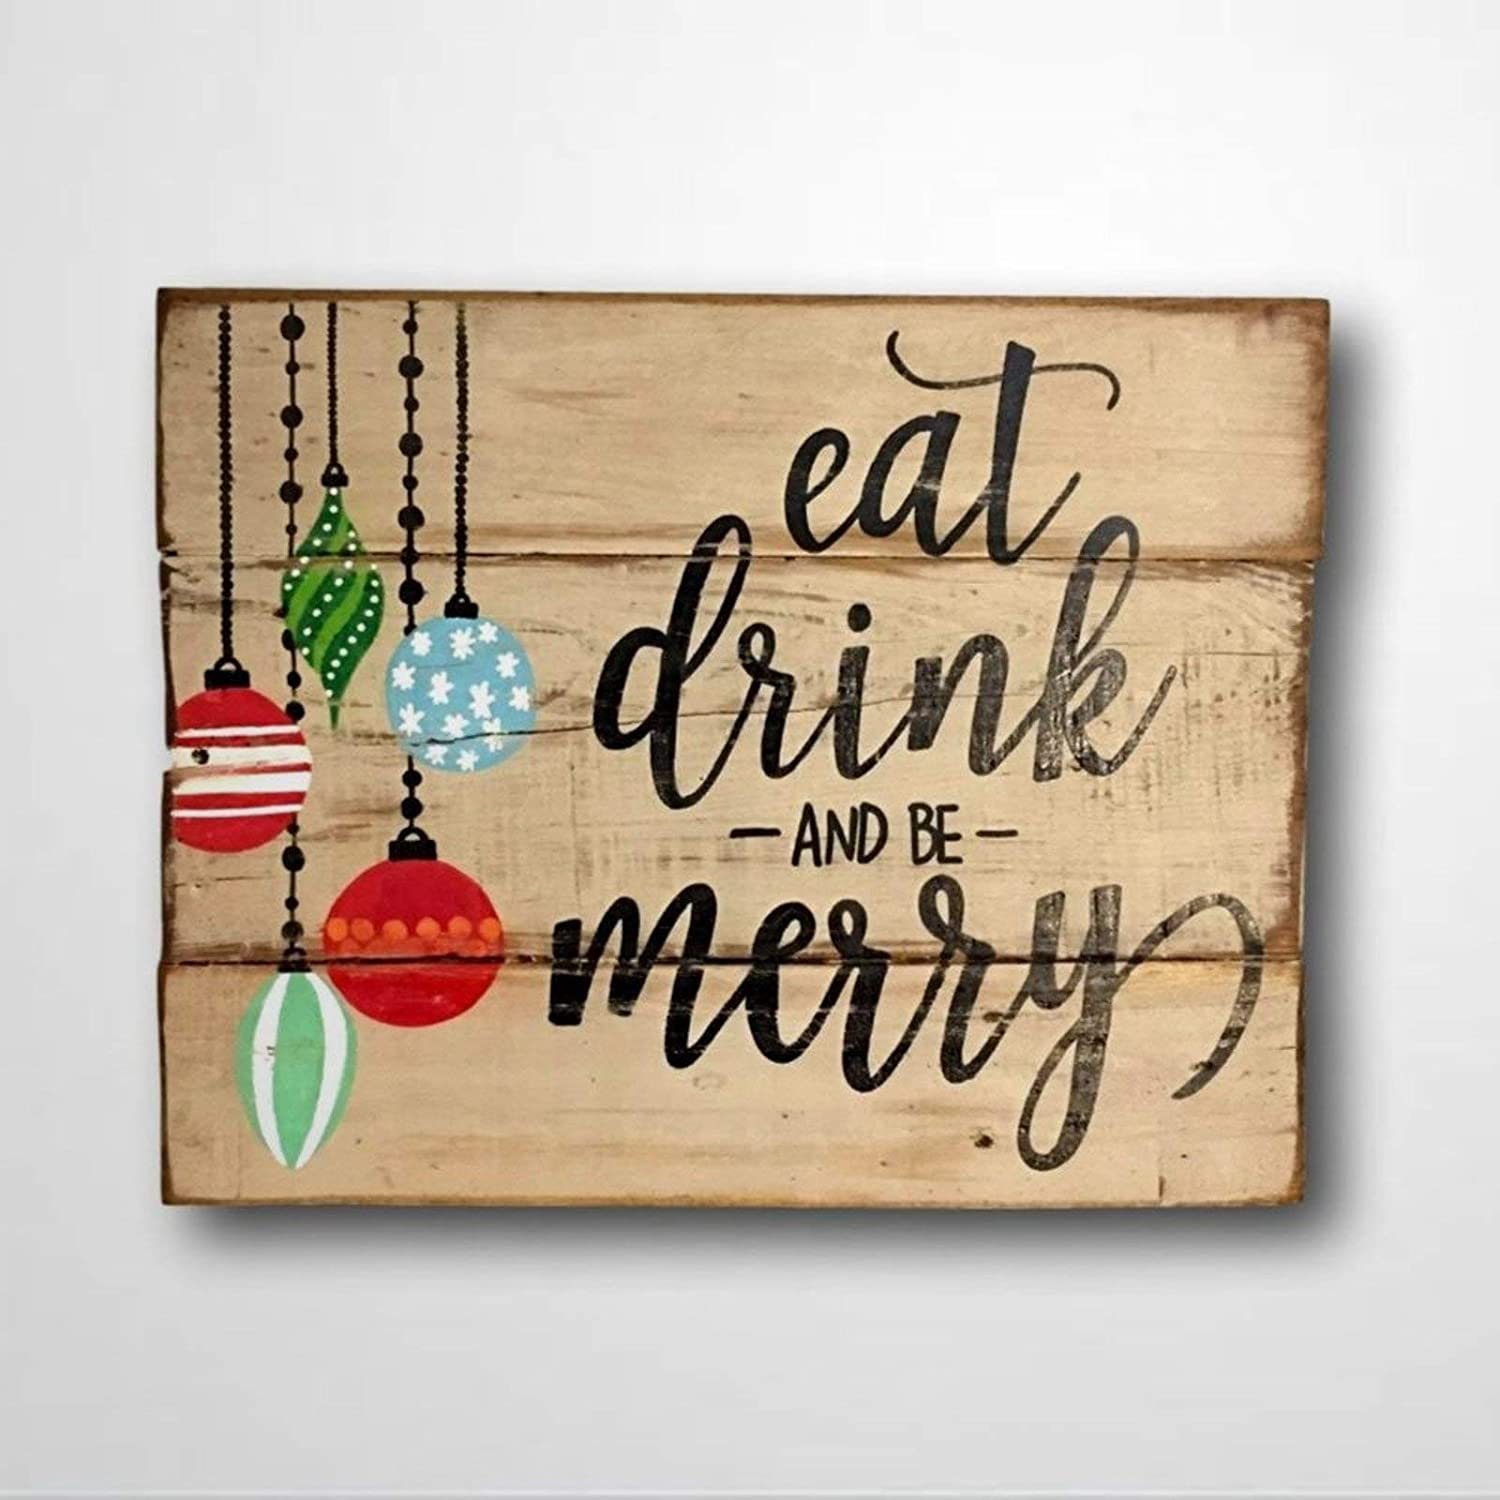 DONL9BAUER Wood Sign Eat Drink and Be Merry Wall Hanging Christmas Decor Rustic Funny Mantel Vintage Sign Home Decor Indoor Outdoor